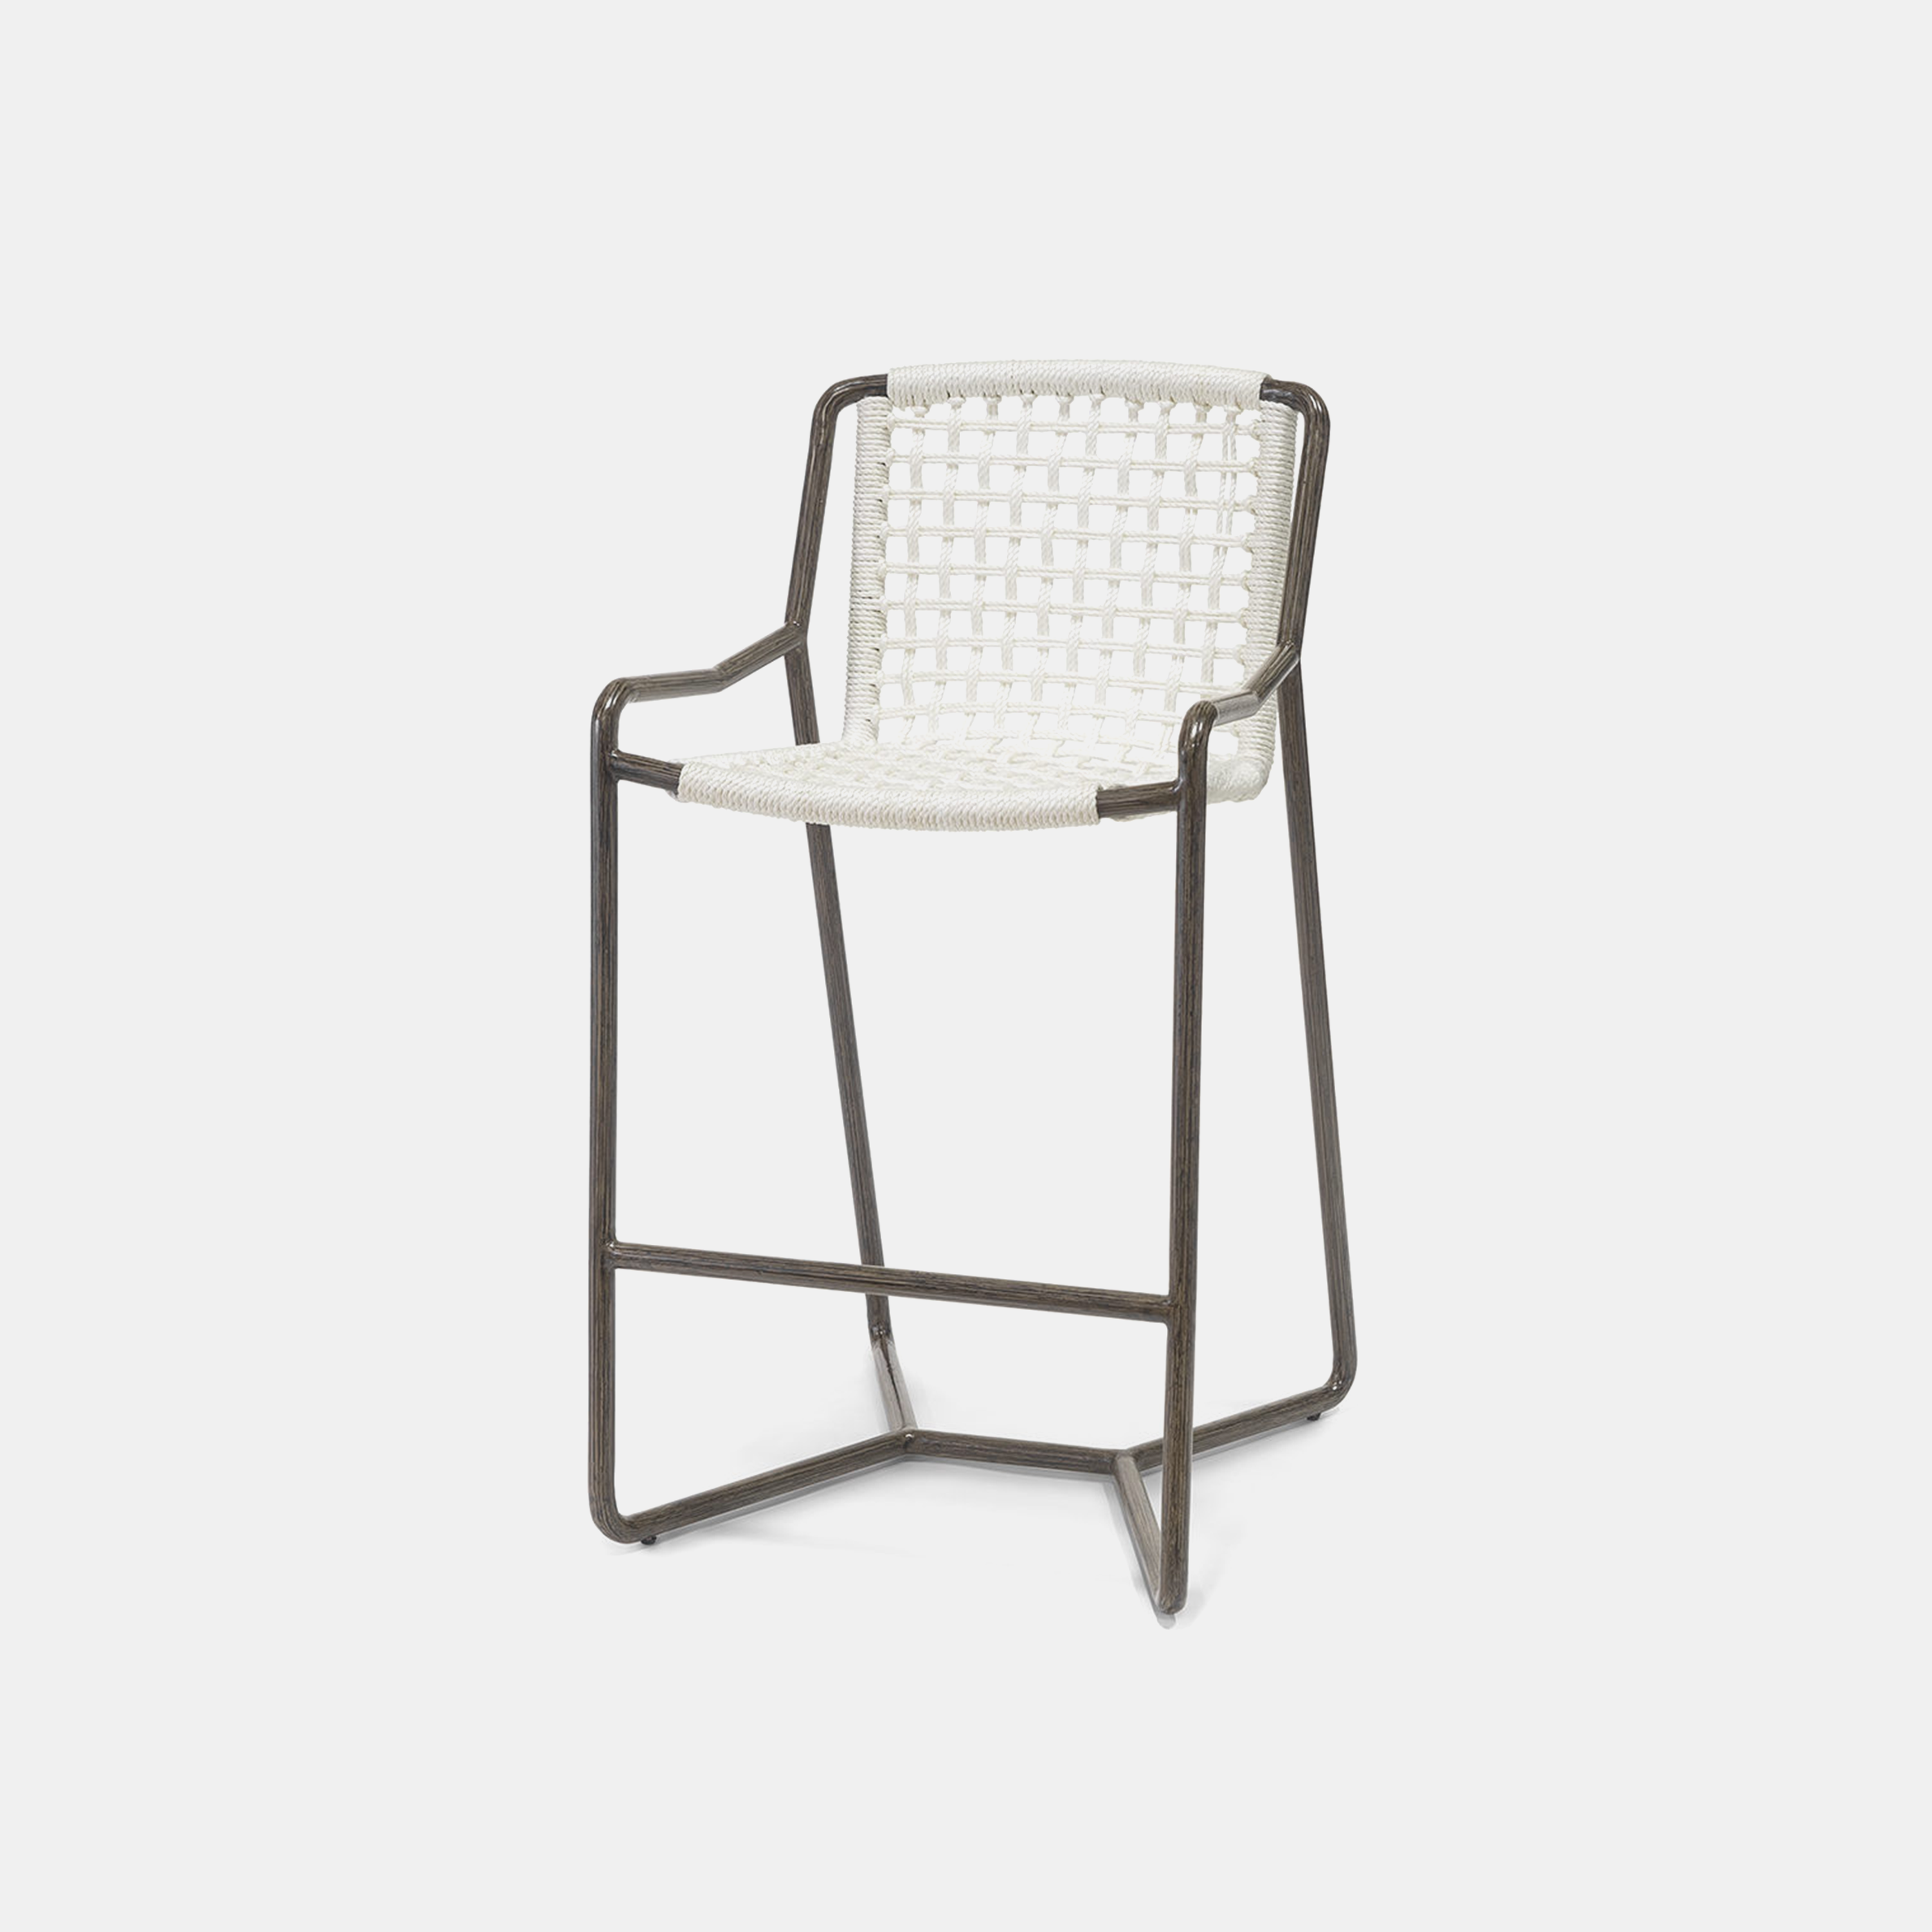 "Dockside Bar Stool  23.5""w x 27.25""d x 43.5""h Available in 30"" bar stool and 24"" counter stool. Also available as lounge chair, dining chair, and ottoman. SKU5819PLK"